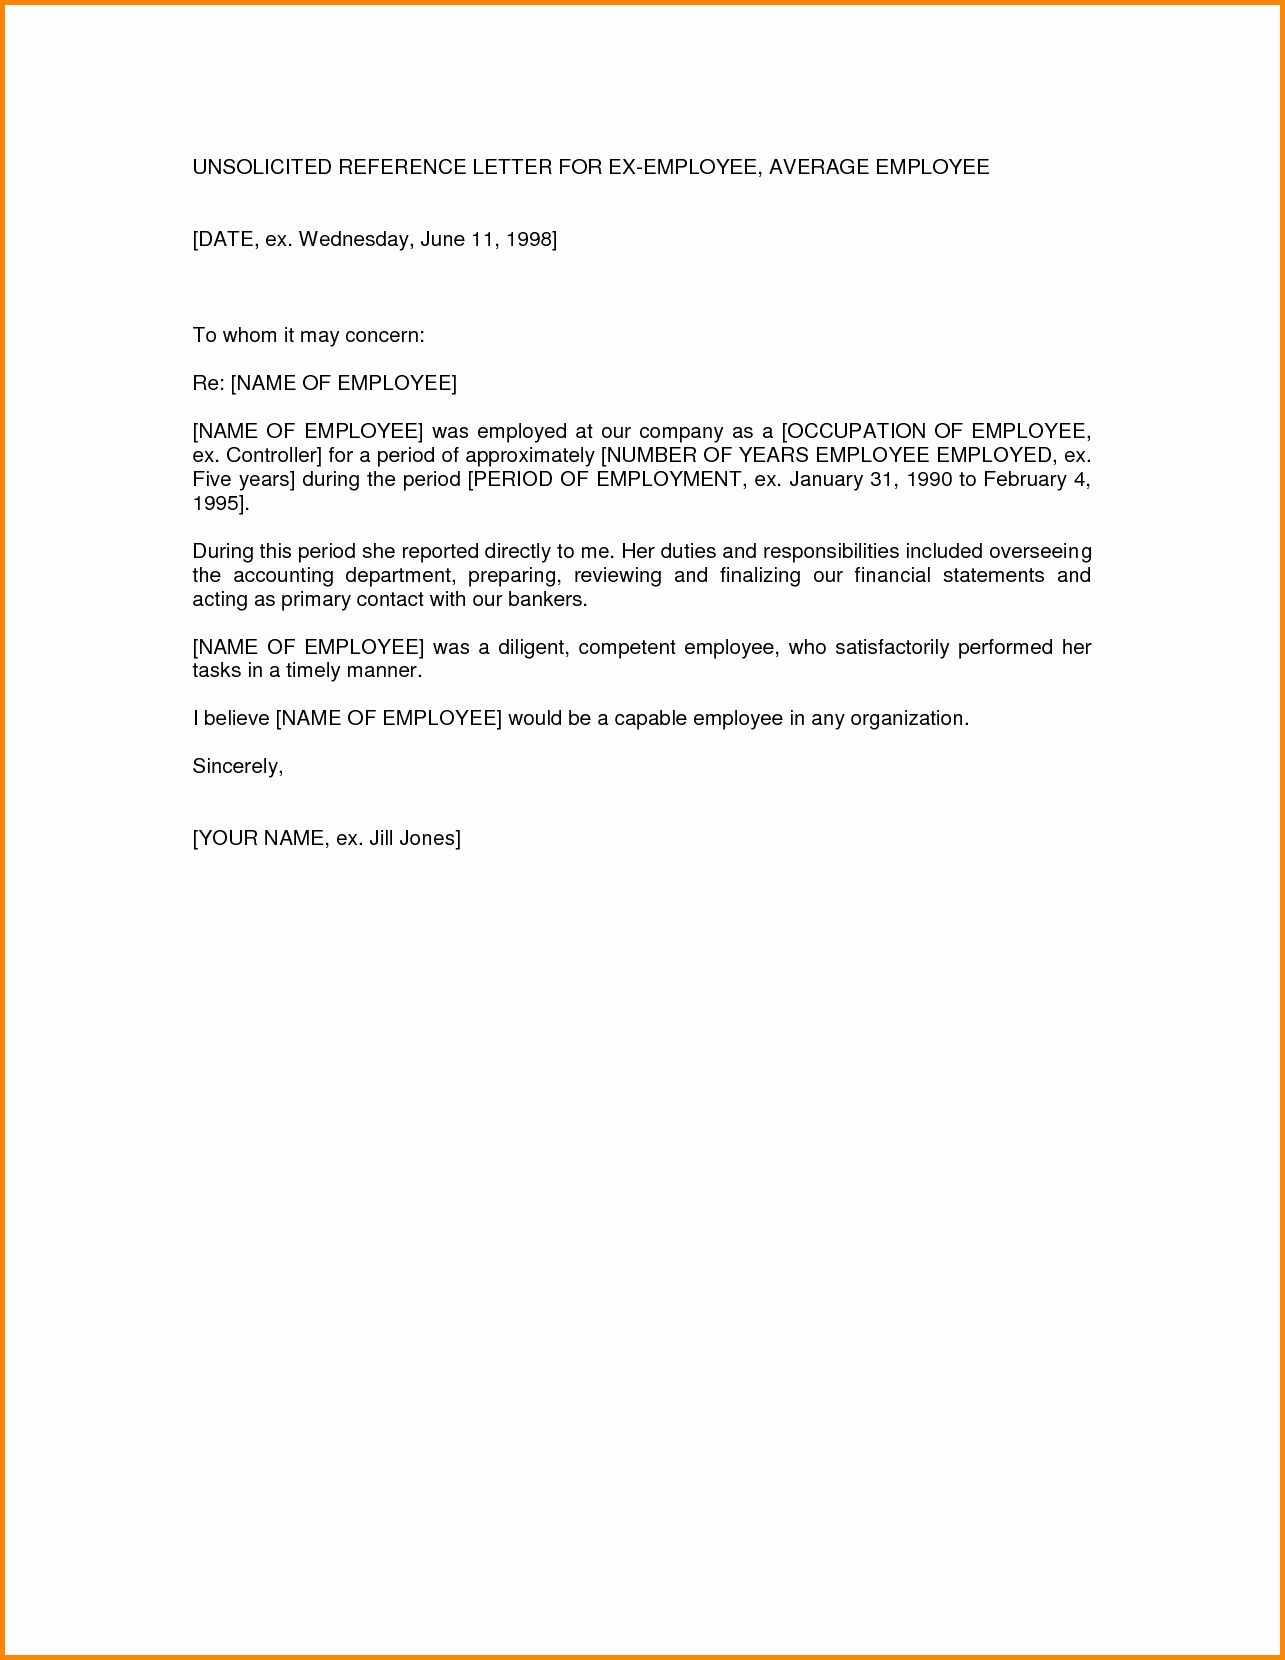 Sample Recommendation Letters for Employee Awesome Reference Letter Template for Employee Bamboodownunder